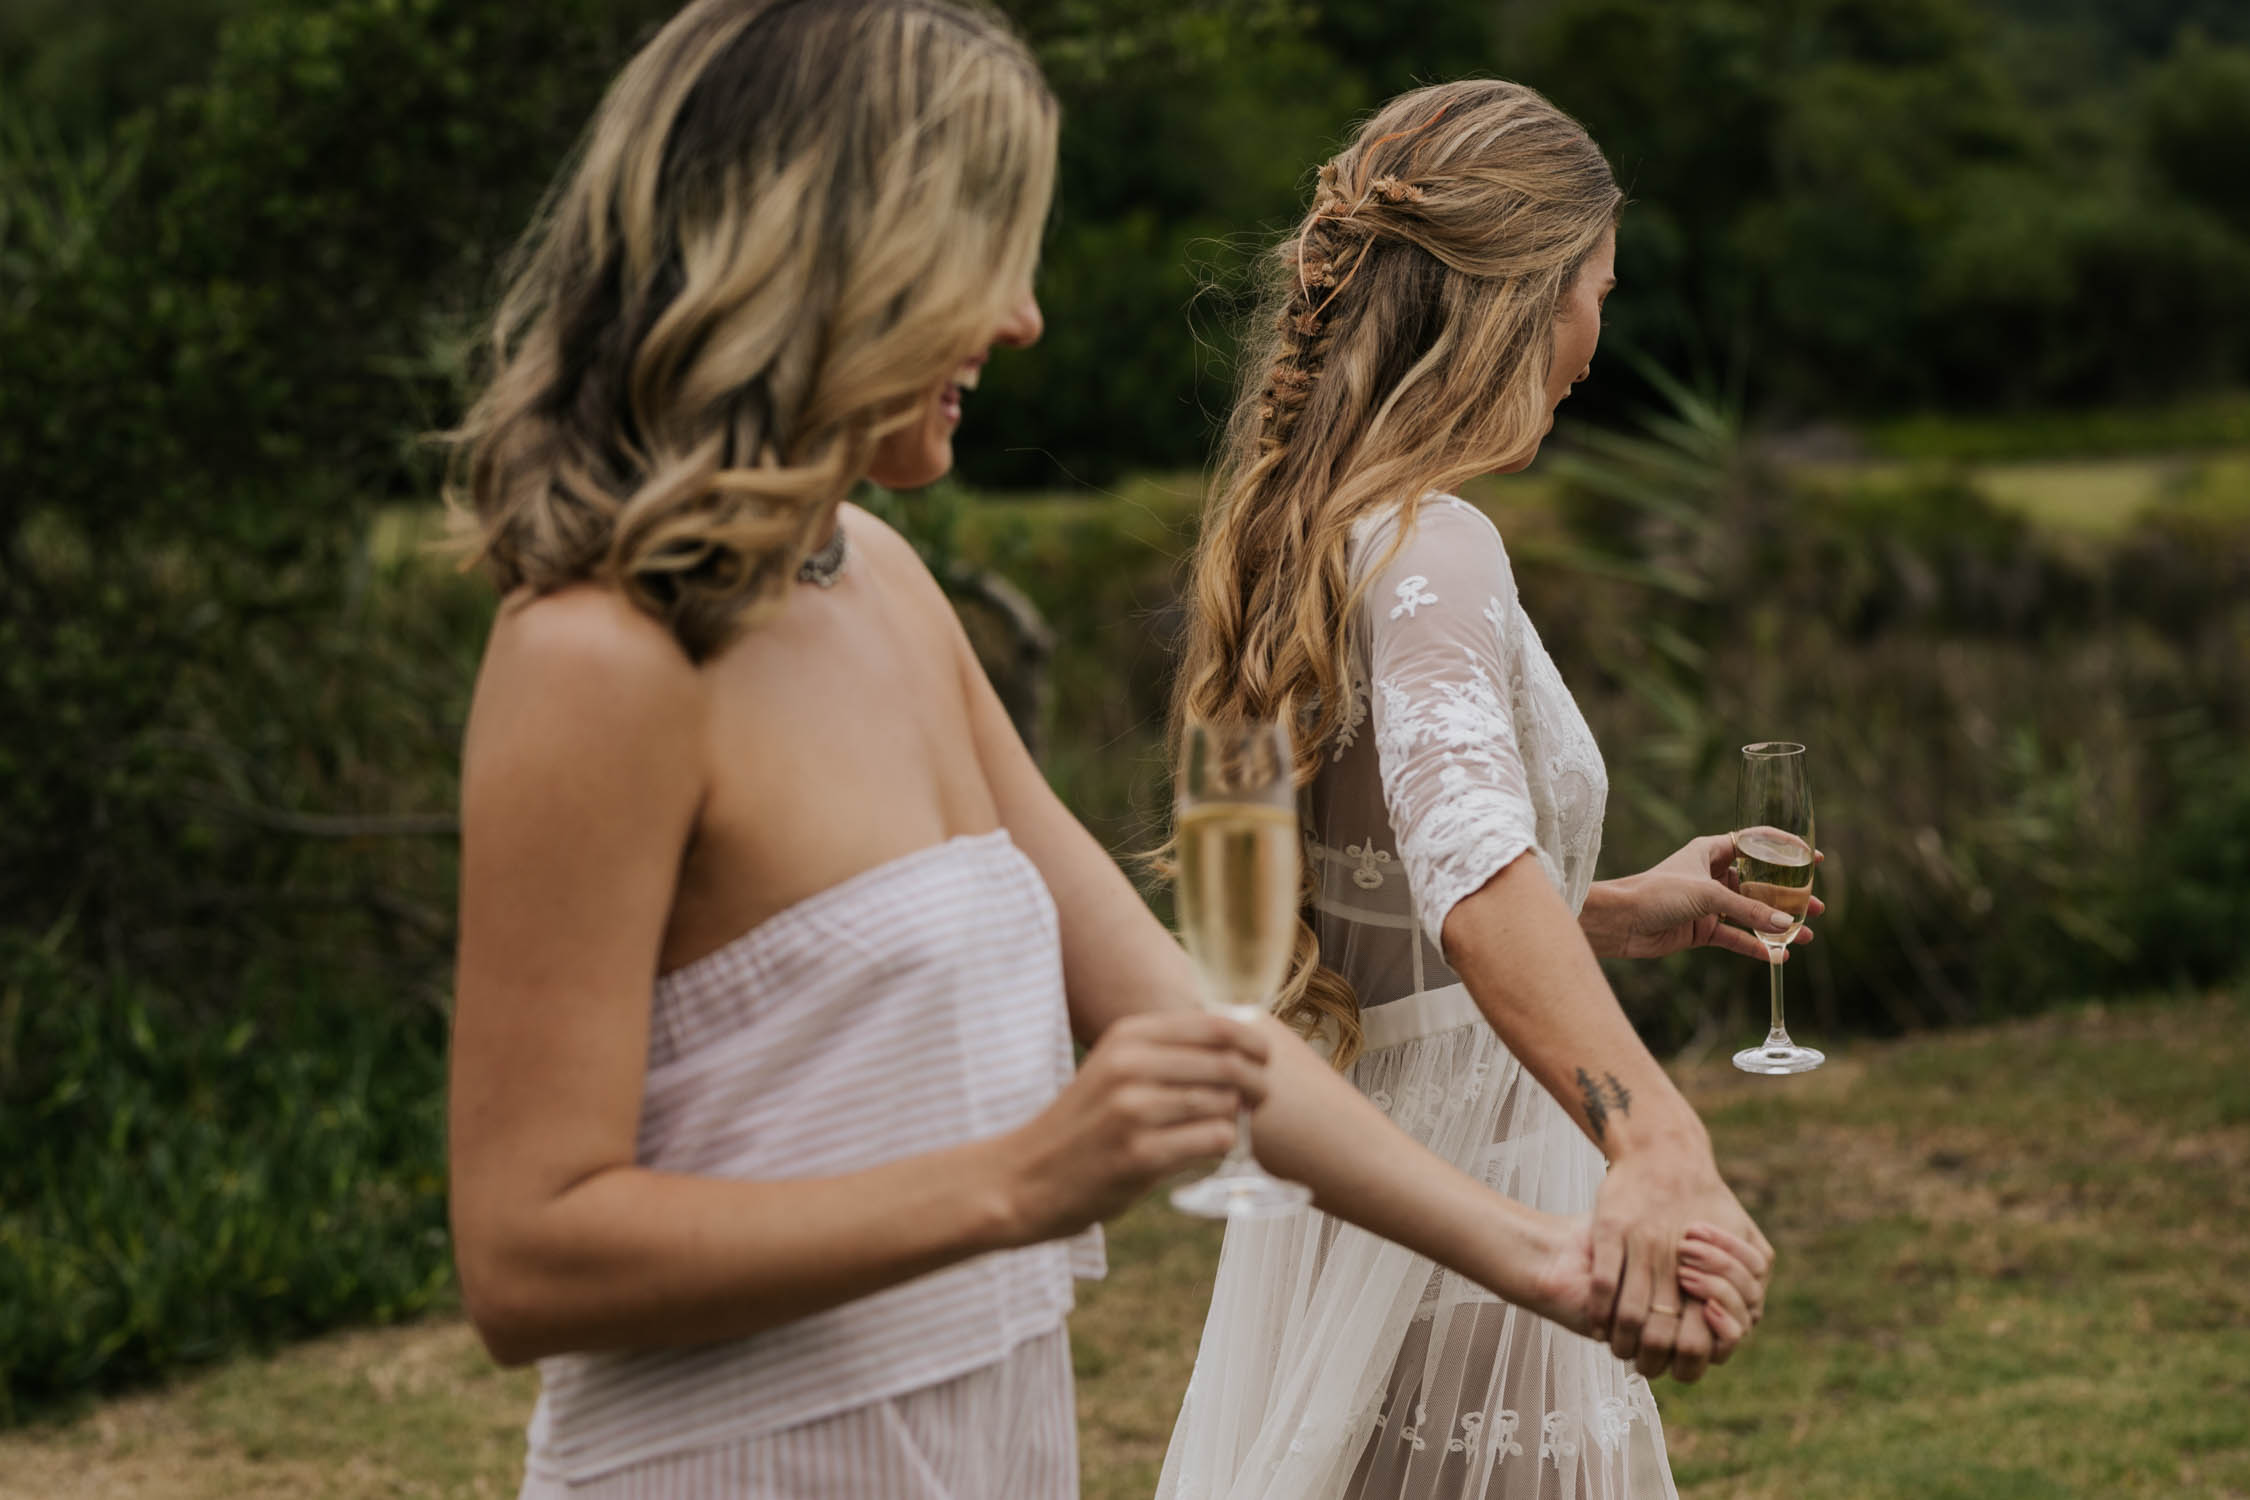 Beautiful Boho bride with long curly hair and gypsy plait dressed in white lace PJs and gown dances and drinks champagne with her bridesmaid